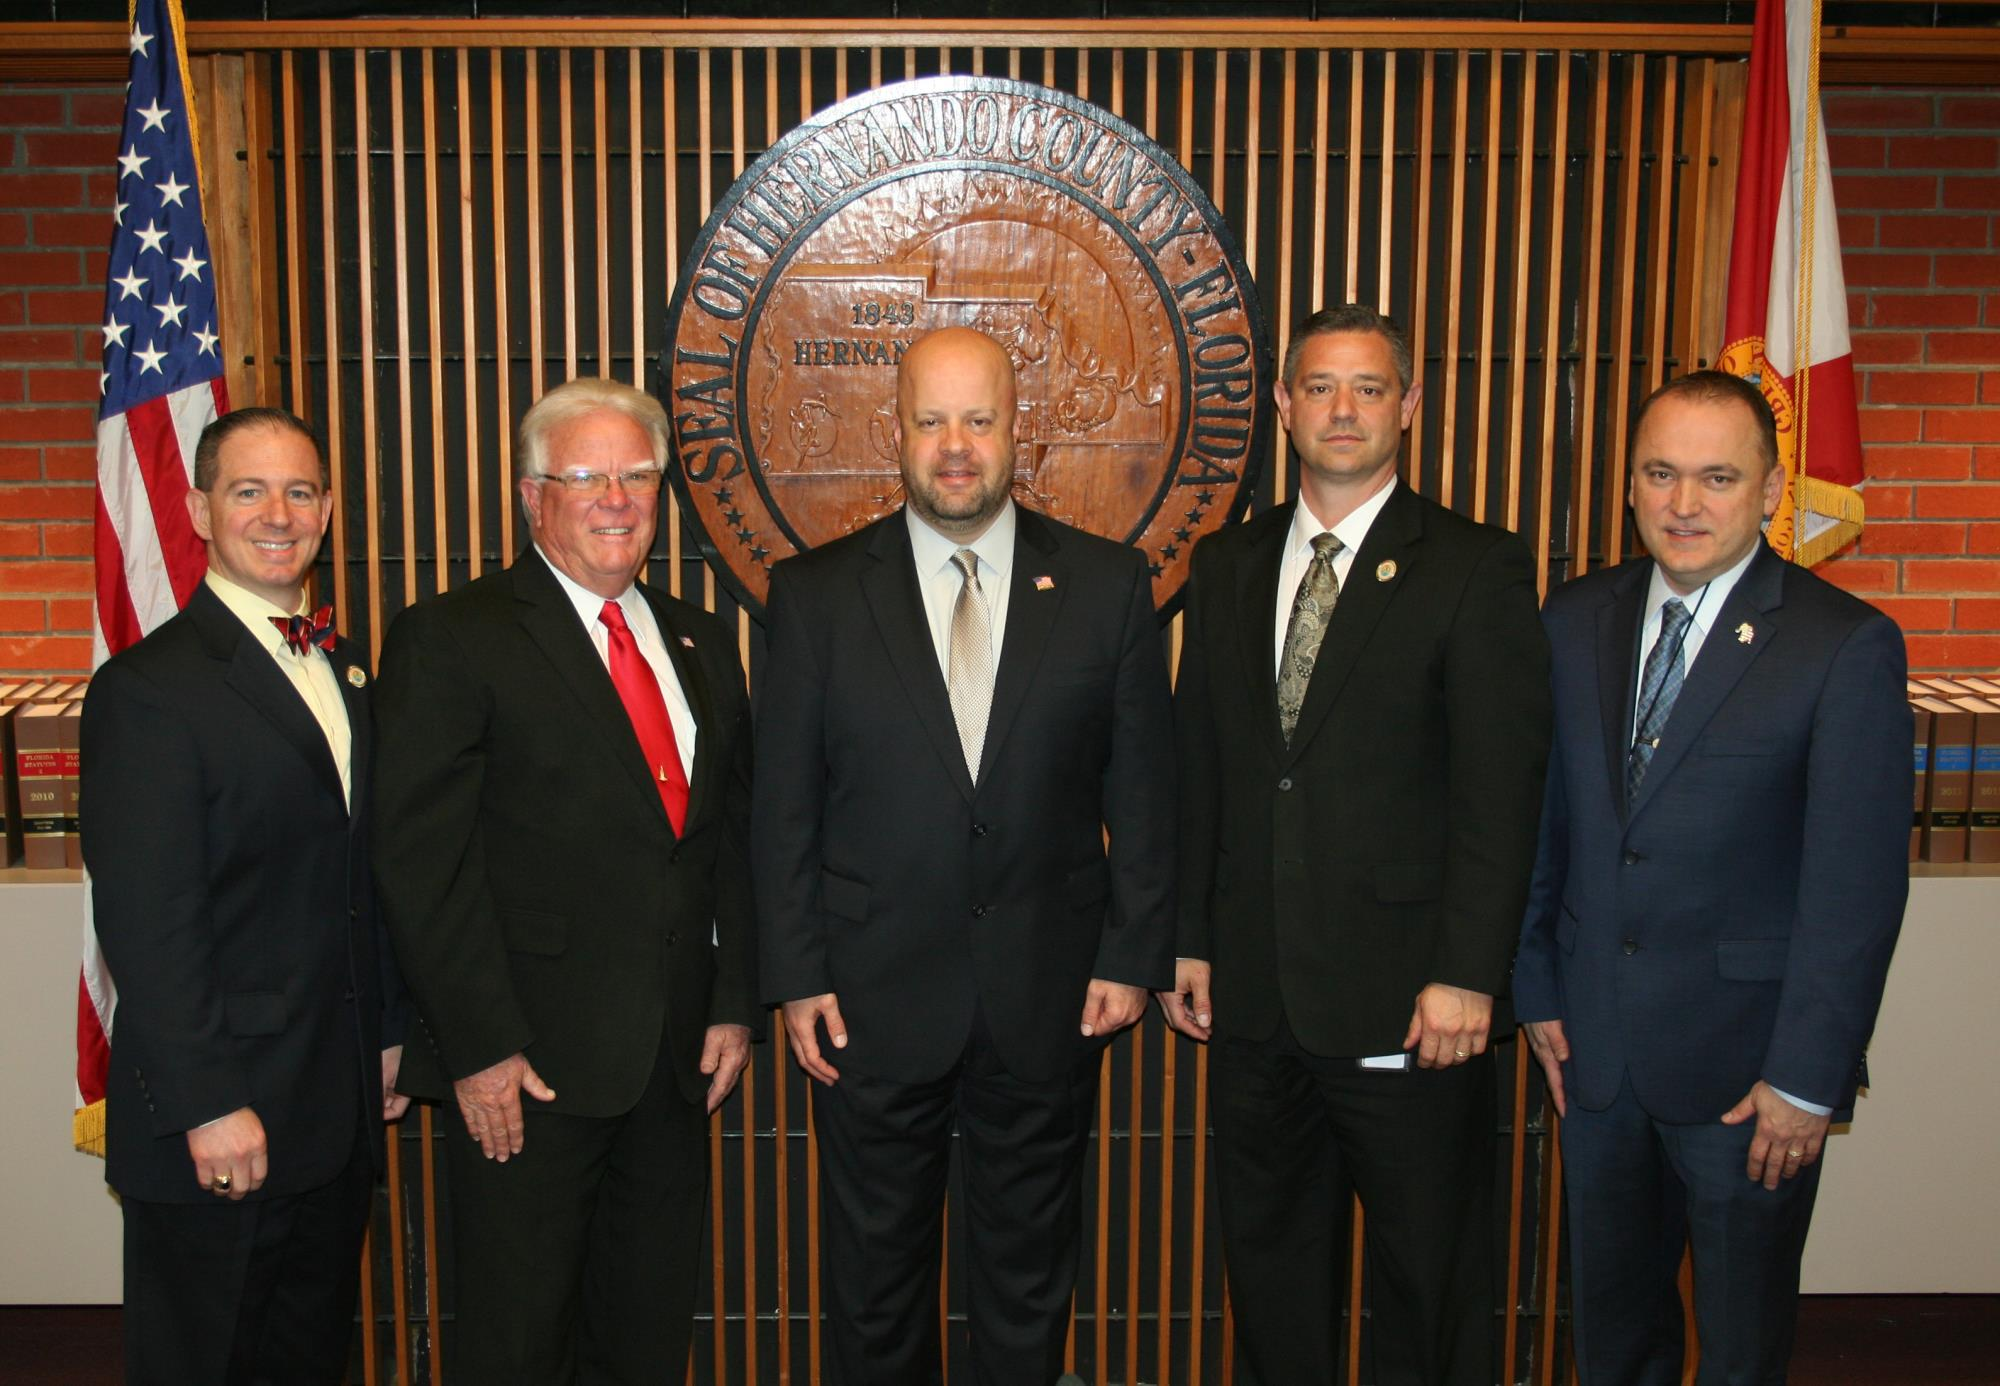 2019 Hernando Board of County Commissioners